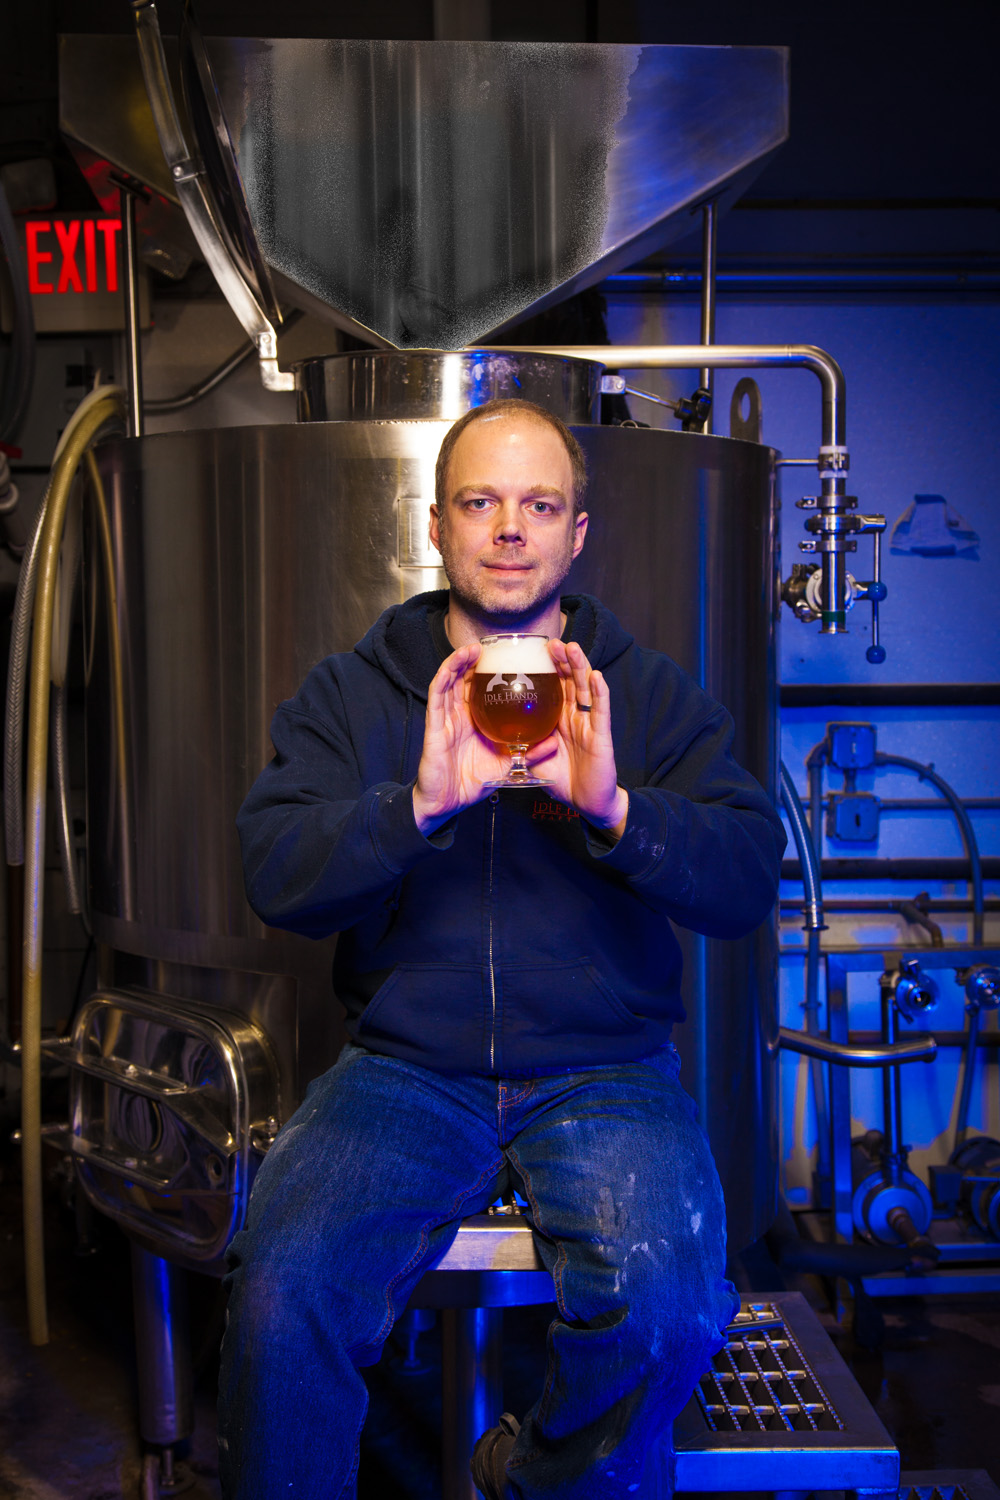 Christopher Tkah, Brewmaster Idle Hands brewing Co. Malden, MA Established in 2011